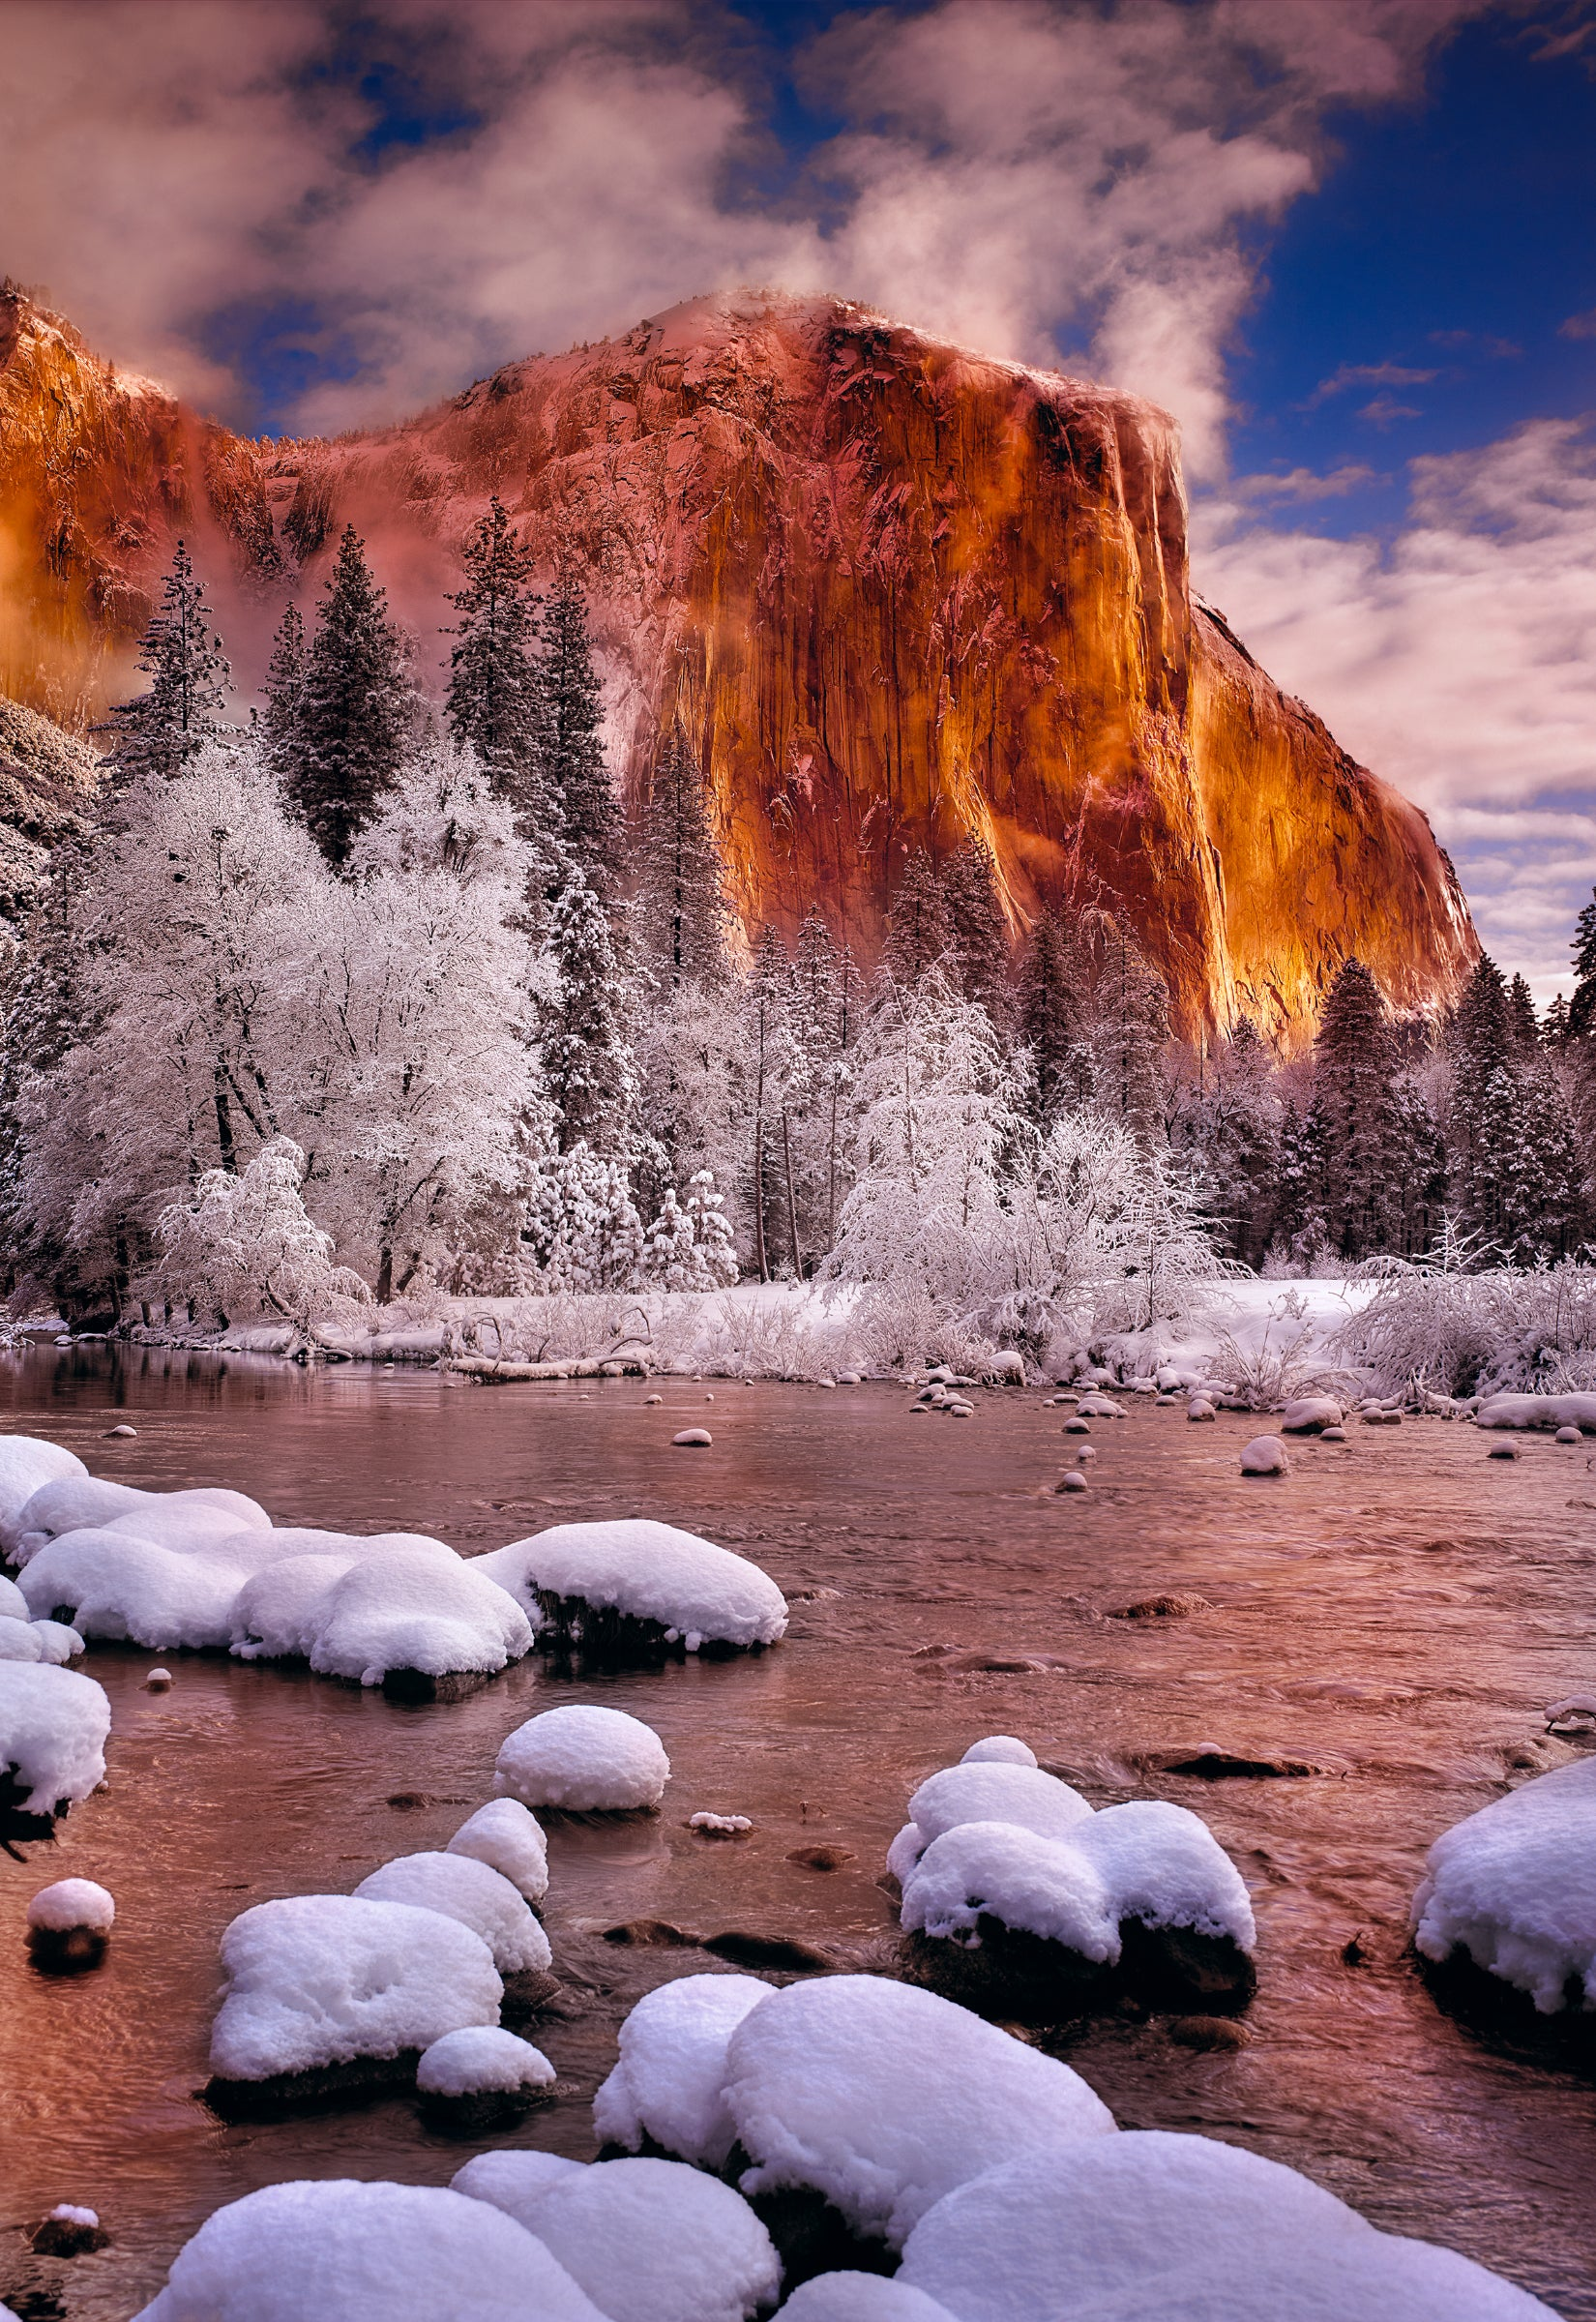 Snow covered rocks in a river running in front on El Capitan and through Yosemite National Park